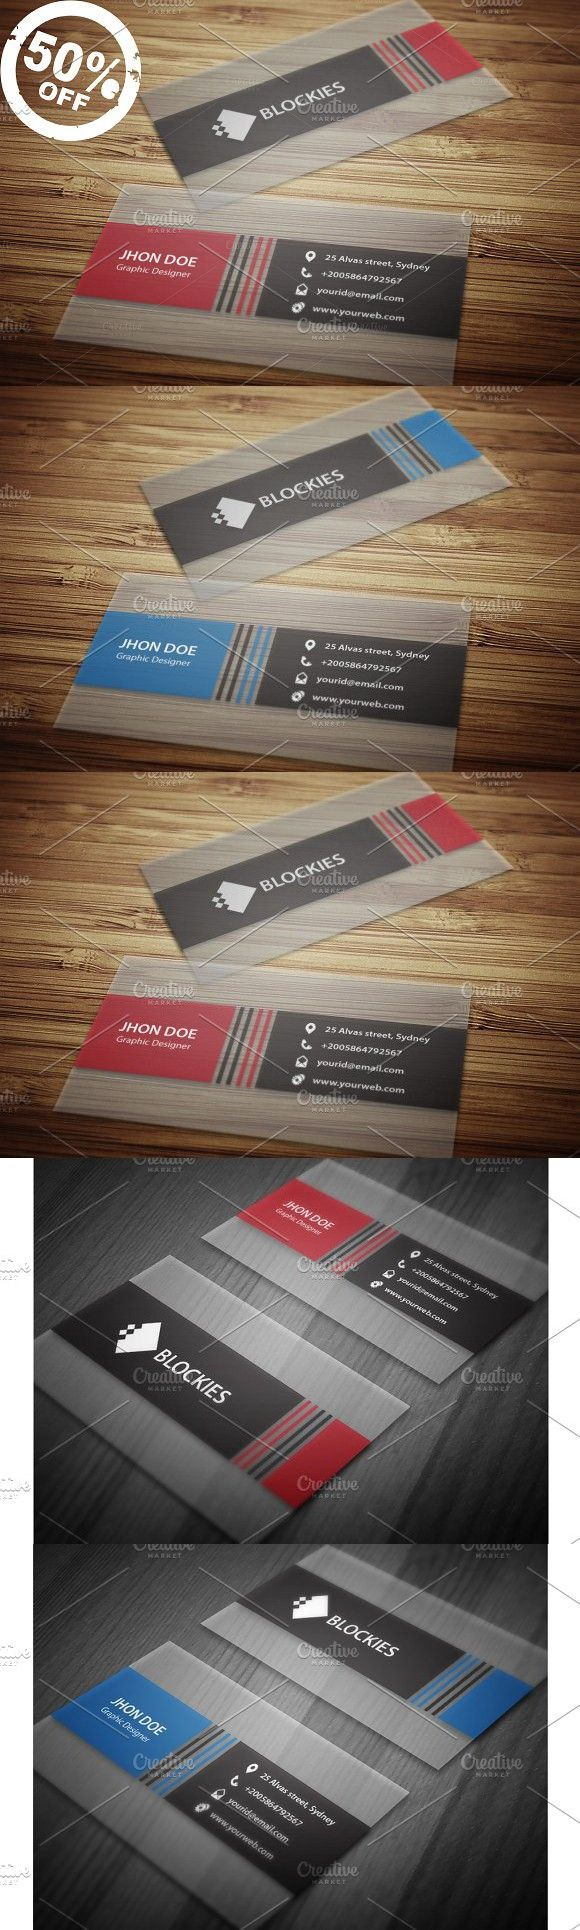 4 advantages of plastic business card printing black transparent semitransparent business card creative business card templates transparent business card template fbccfo Gallery